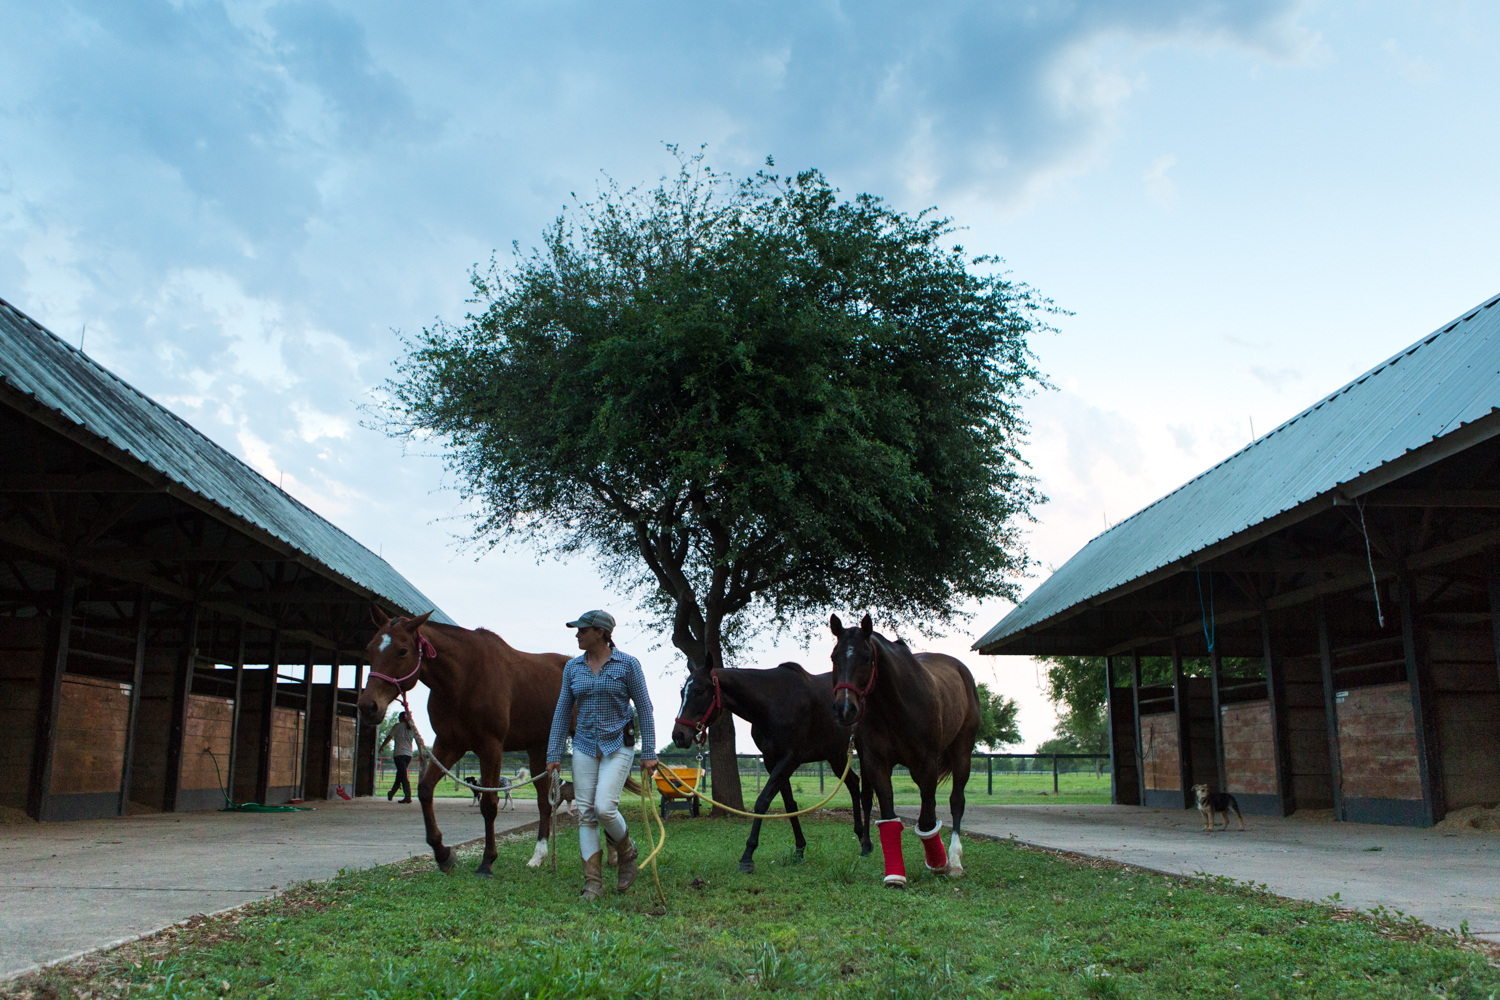 Hudspeth leads the horses out to the pasture at the end of the day. She works with the horses from sunrise to sunset six days a week.